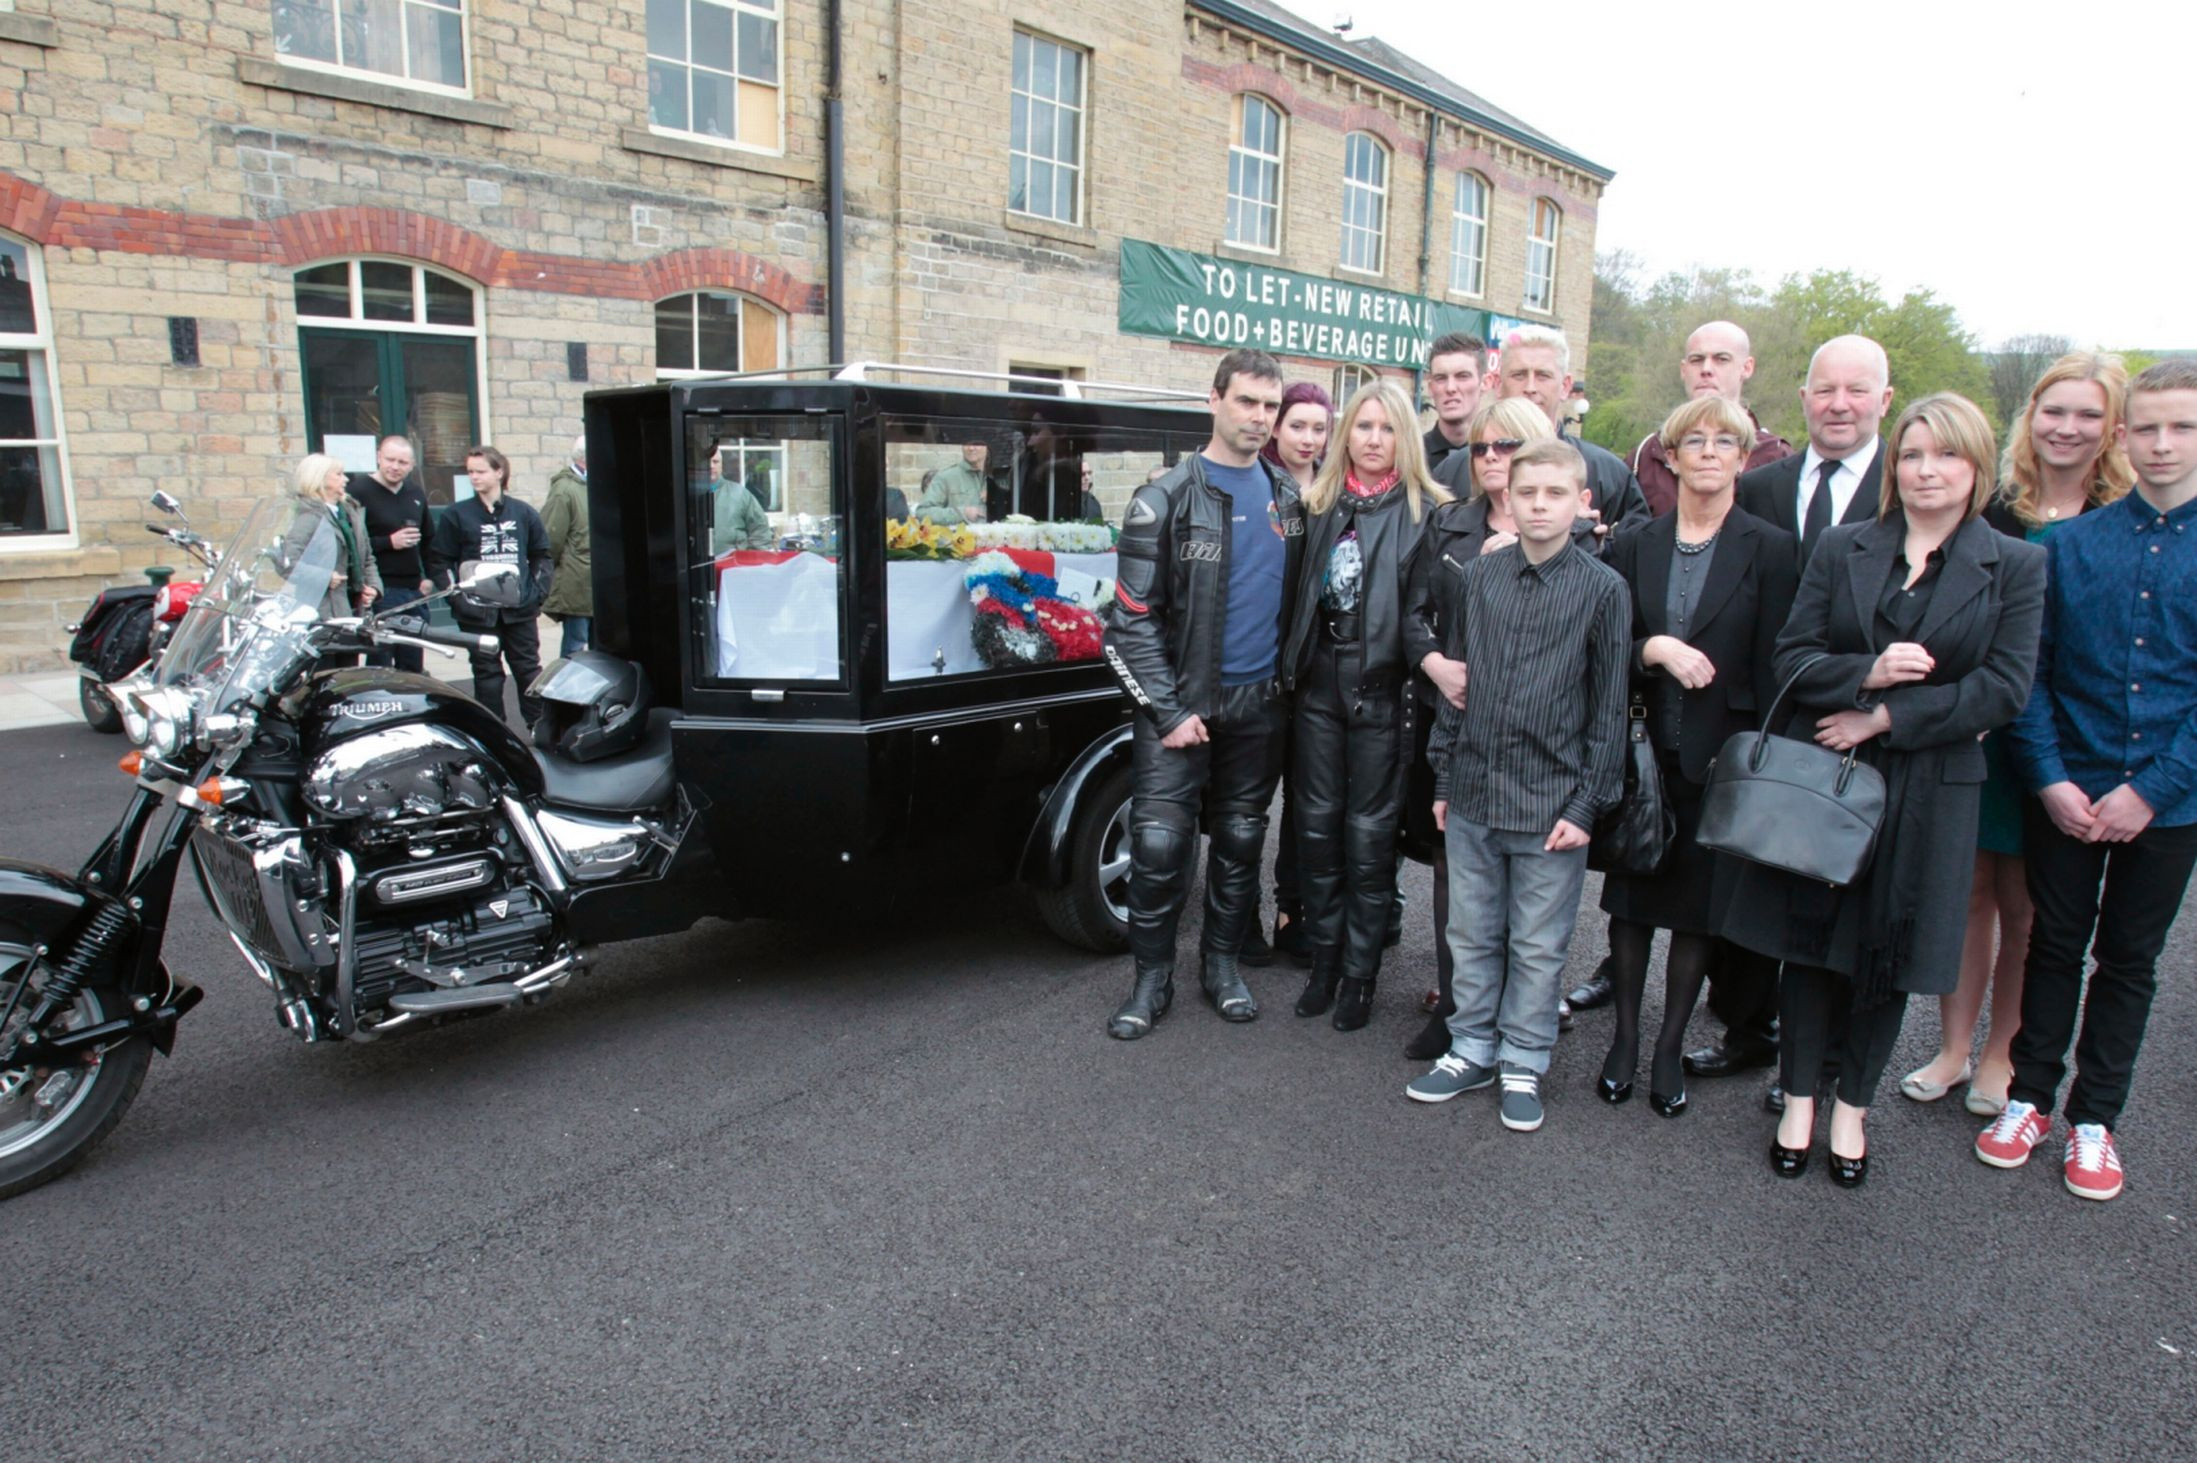 Biker makes final journey in Triumph Rocket III hearse